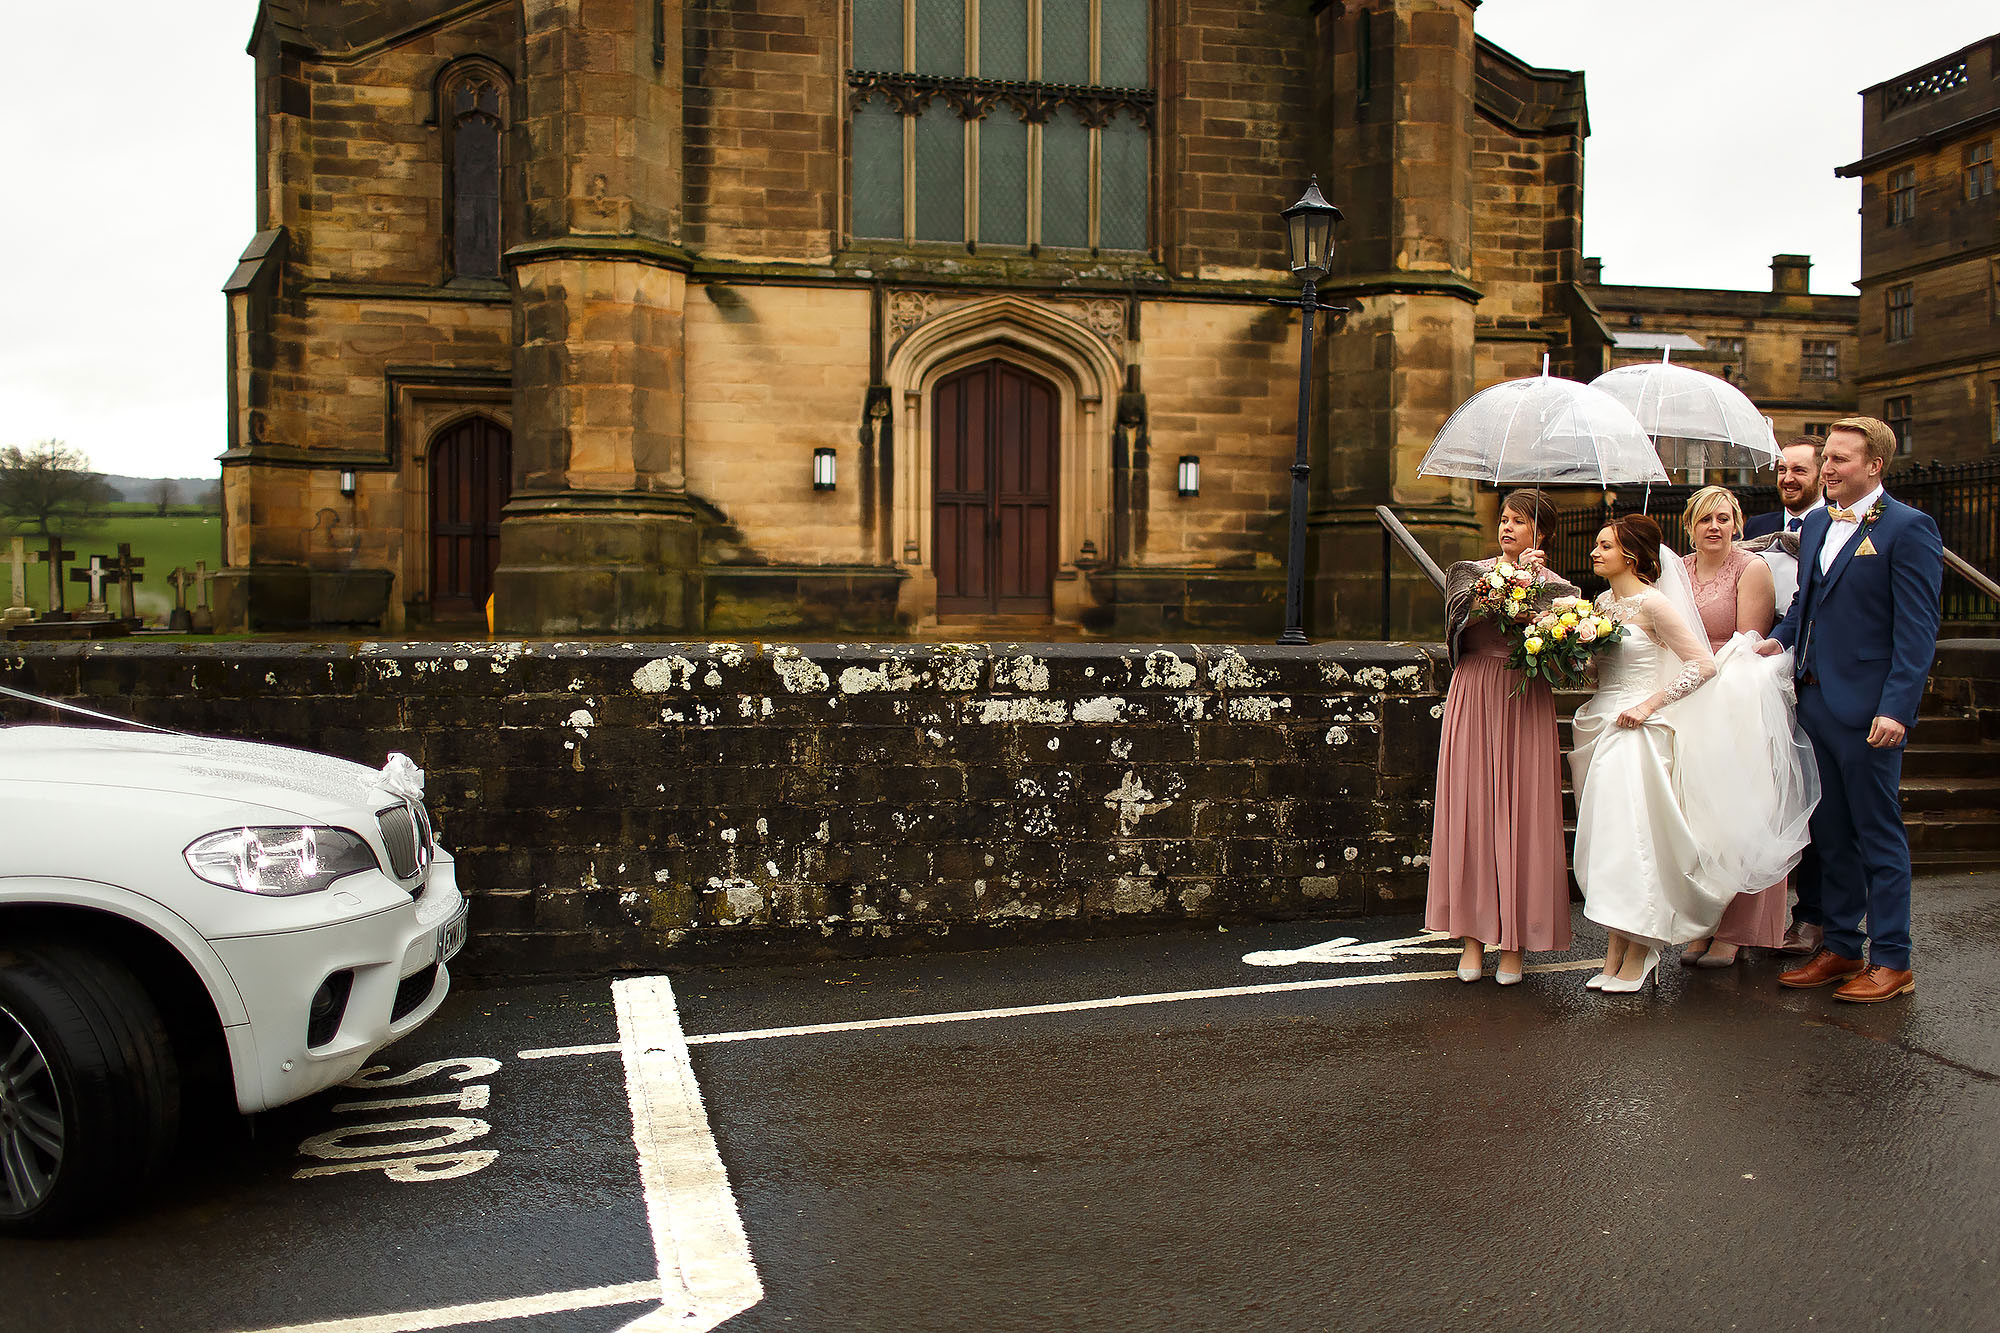 Bride and groom with bridesmaids waiting outside Stonyhurst St Peters for the wedding car | Mitton Hall wedding photographs by Toni Darcy Photography